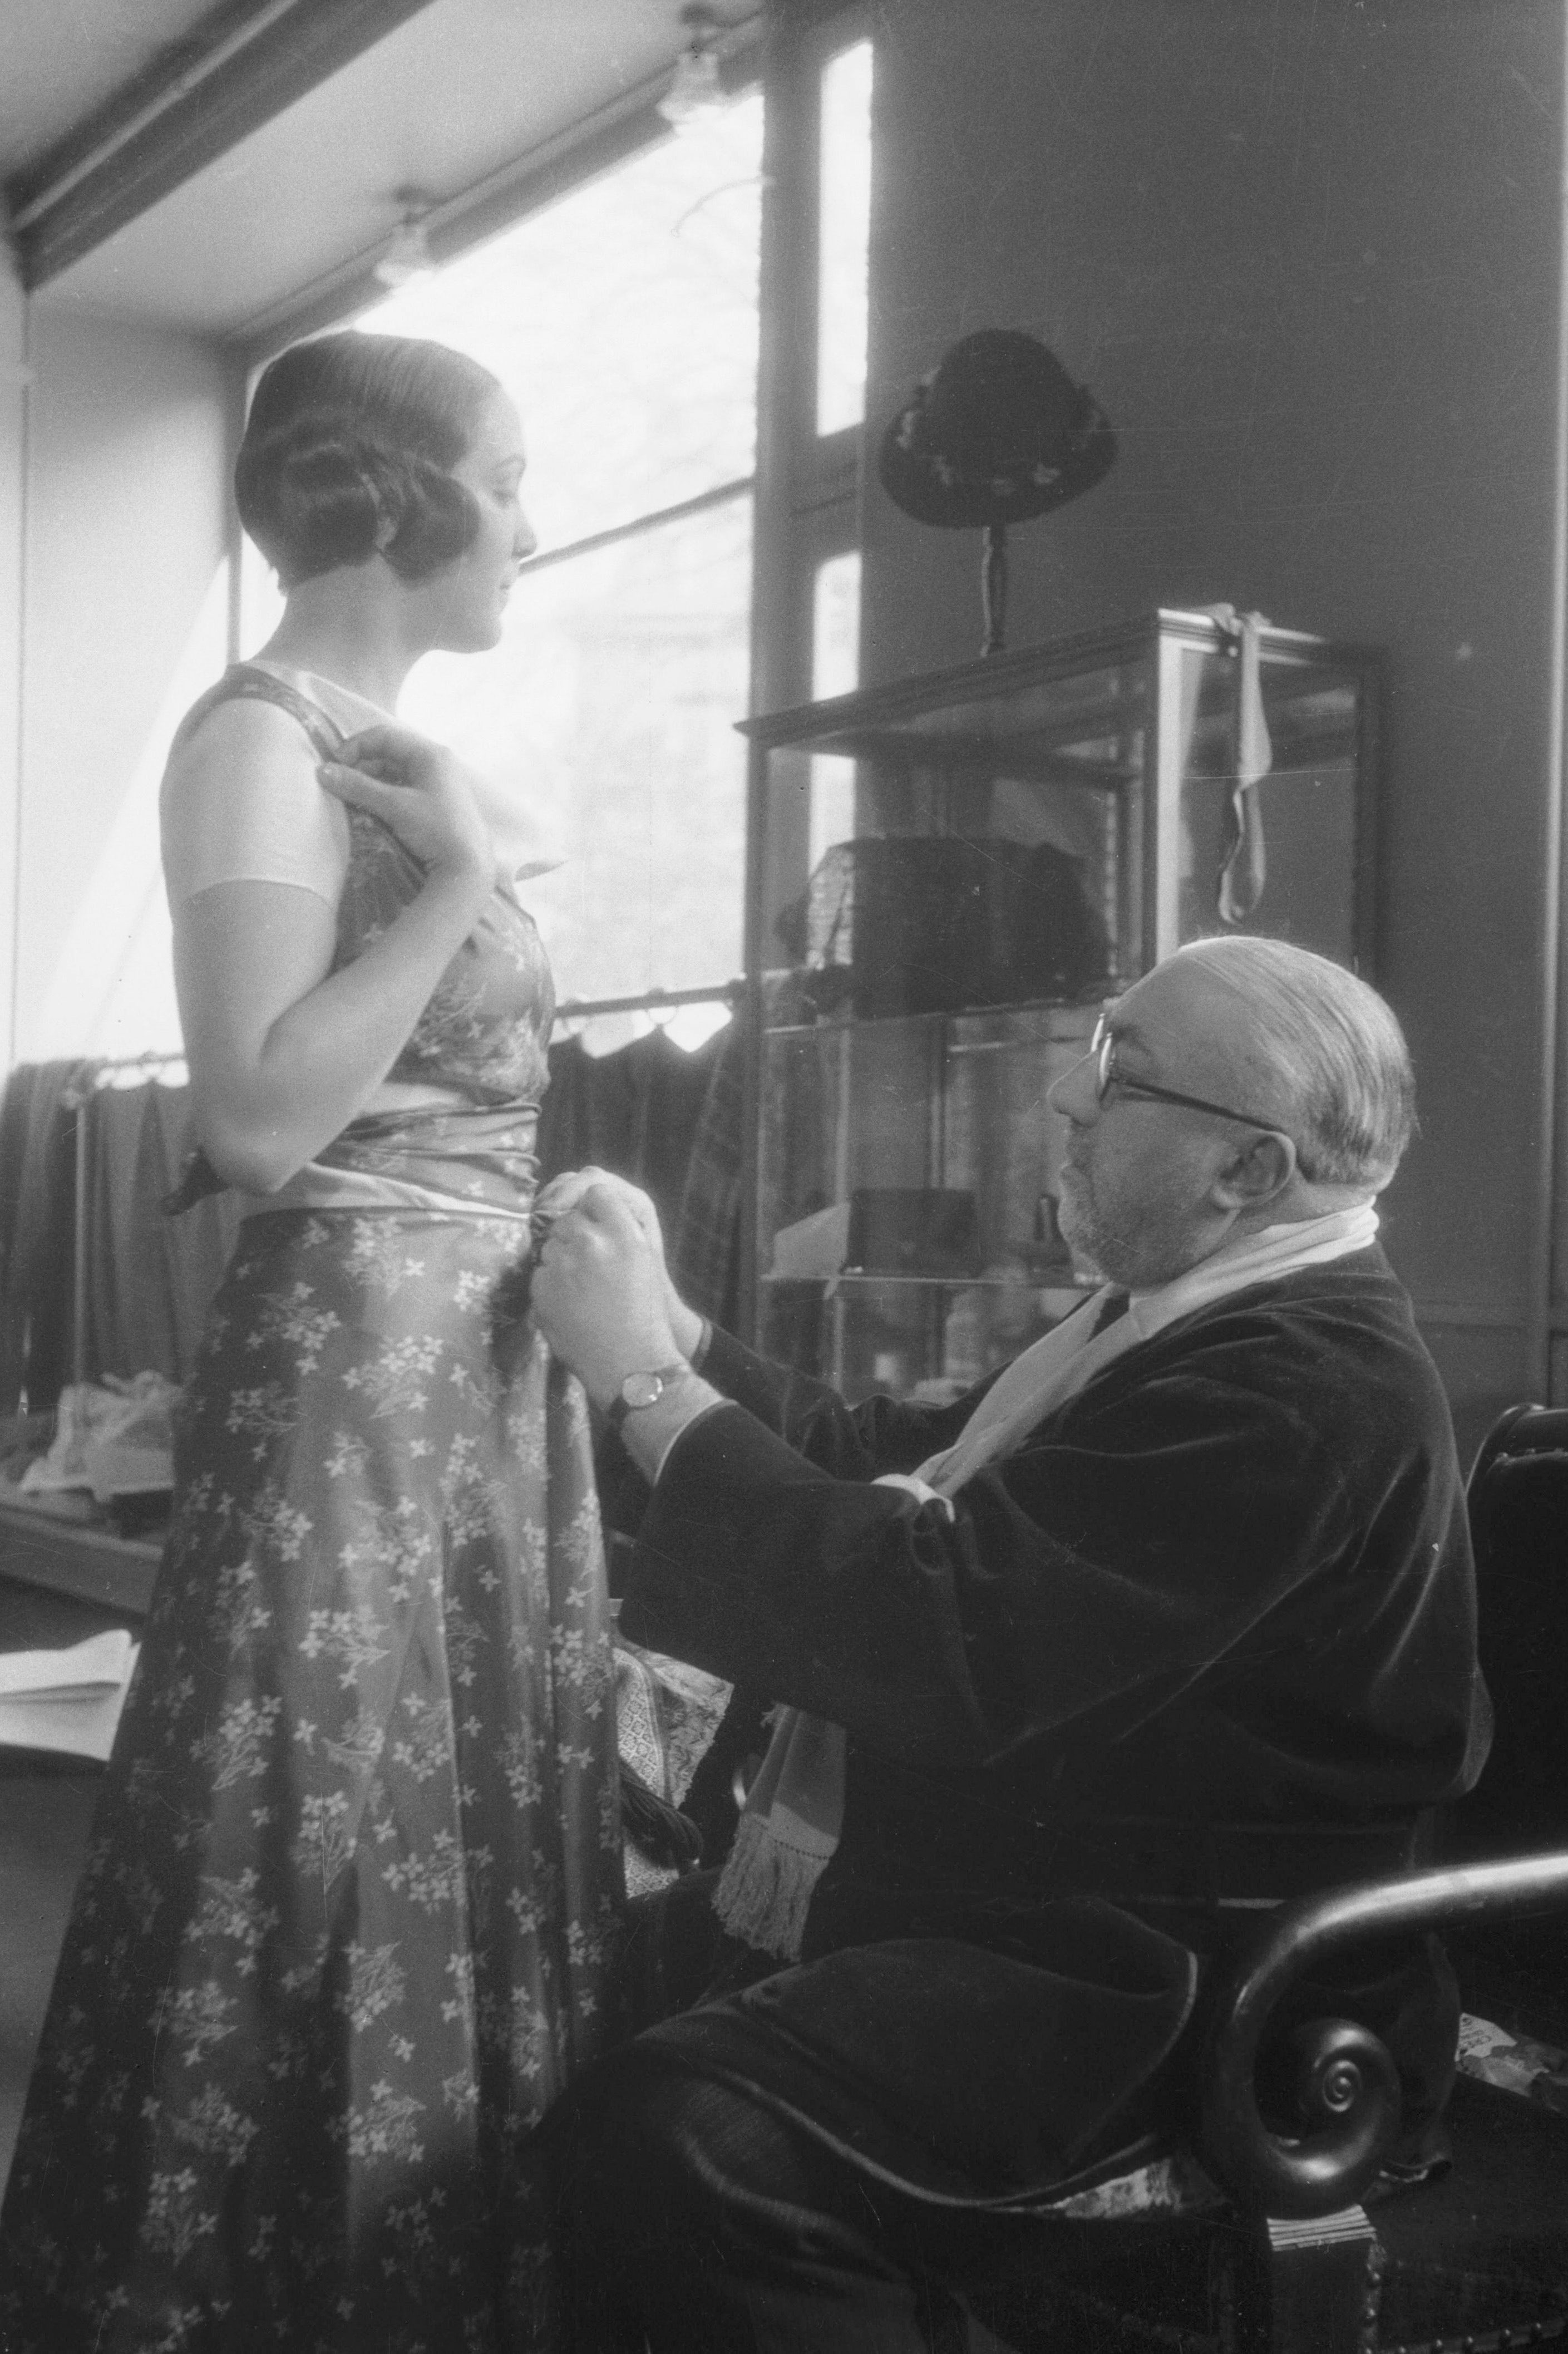 Paul Poiret (1879-1944), fitting with a model | Source: Getty